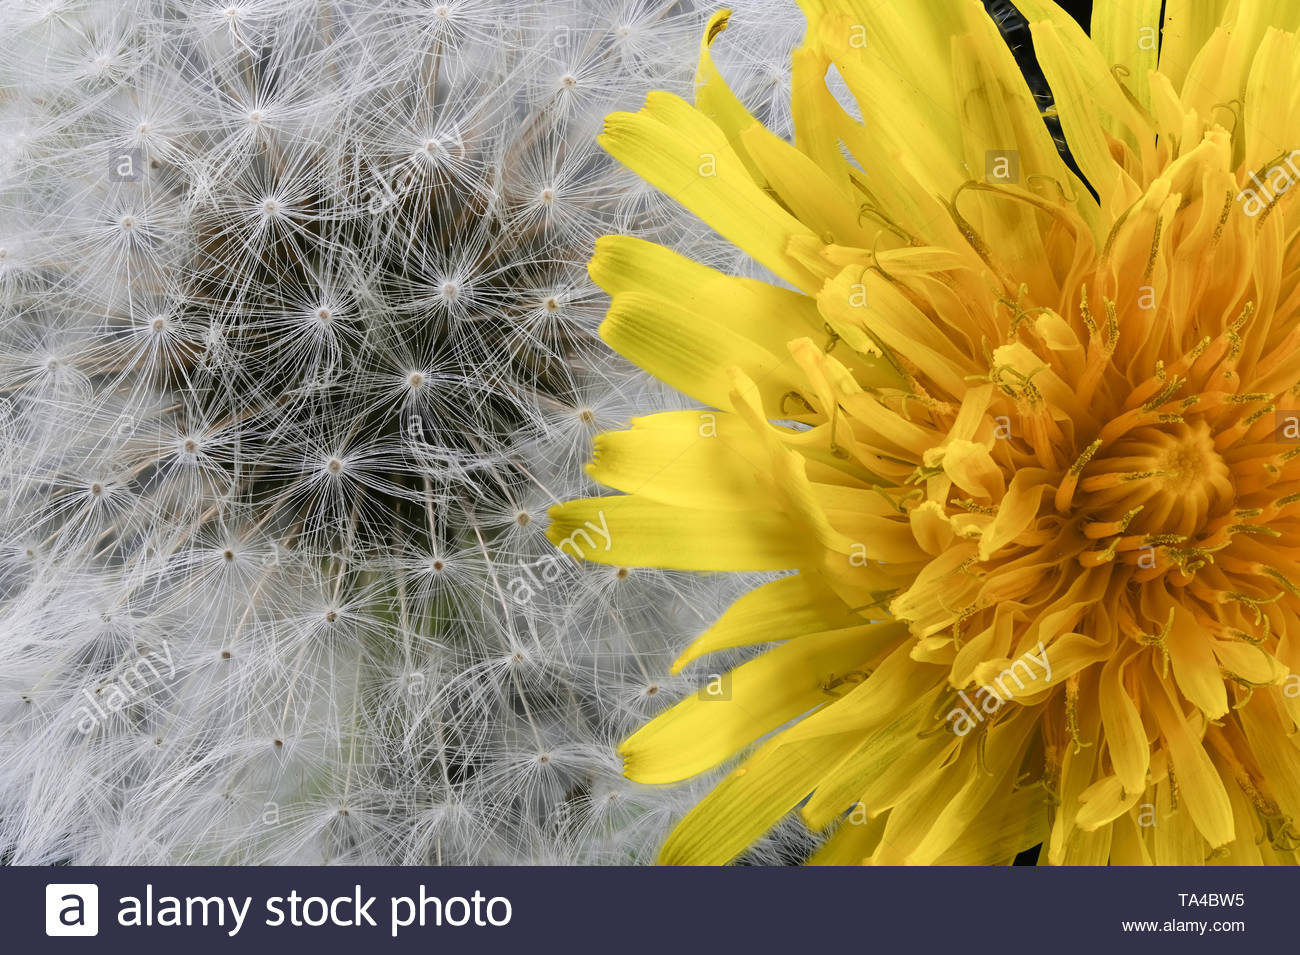 Lyrical flower arrangement with dandelion flowers in different stages of genesis on a black background macro photography - Stock Image